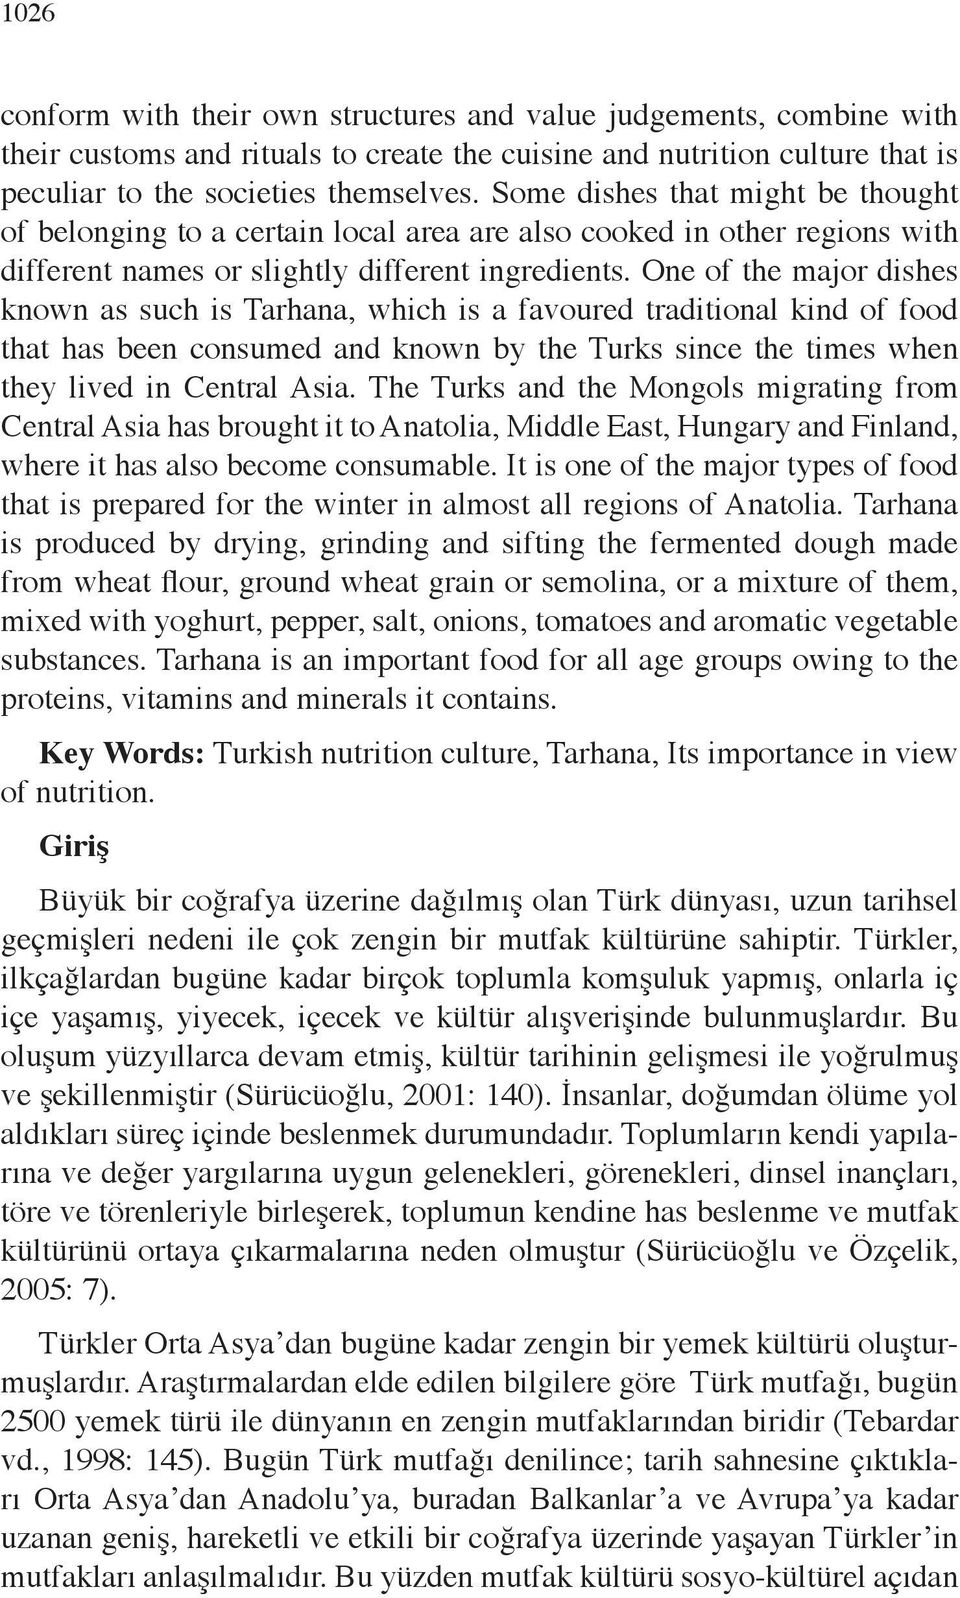 One of the major dishes known as such is Tarhana, which is a favoured traditional kind of food that has been consumed and known by the Turks since the times when they lived in Central Asia.